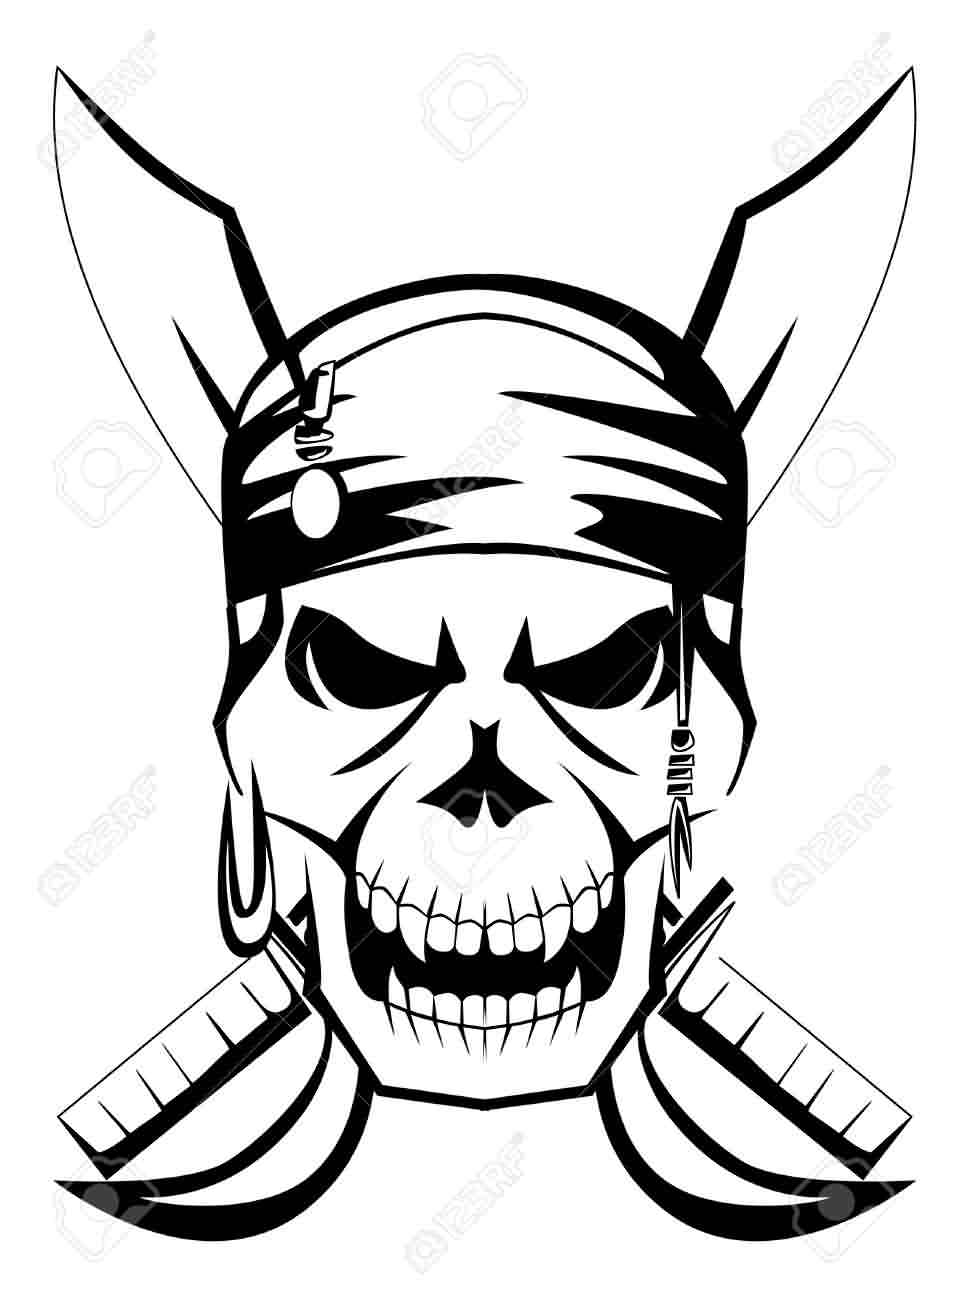 Crossed Swords Behind Pirate Skull Tattoo Designs